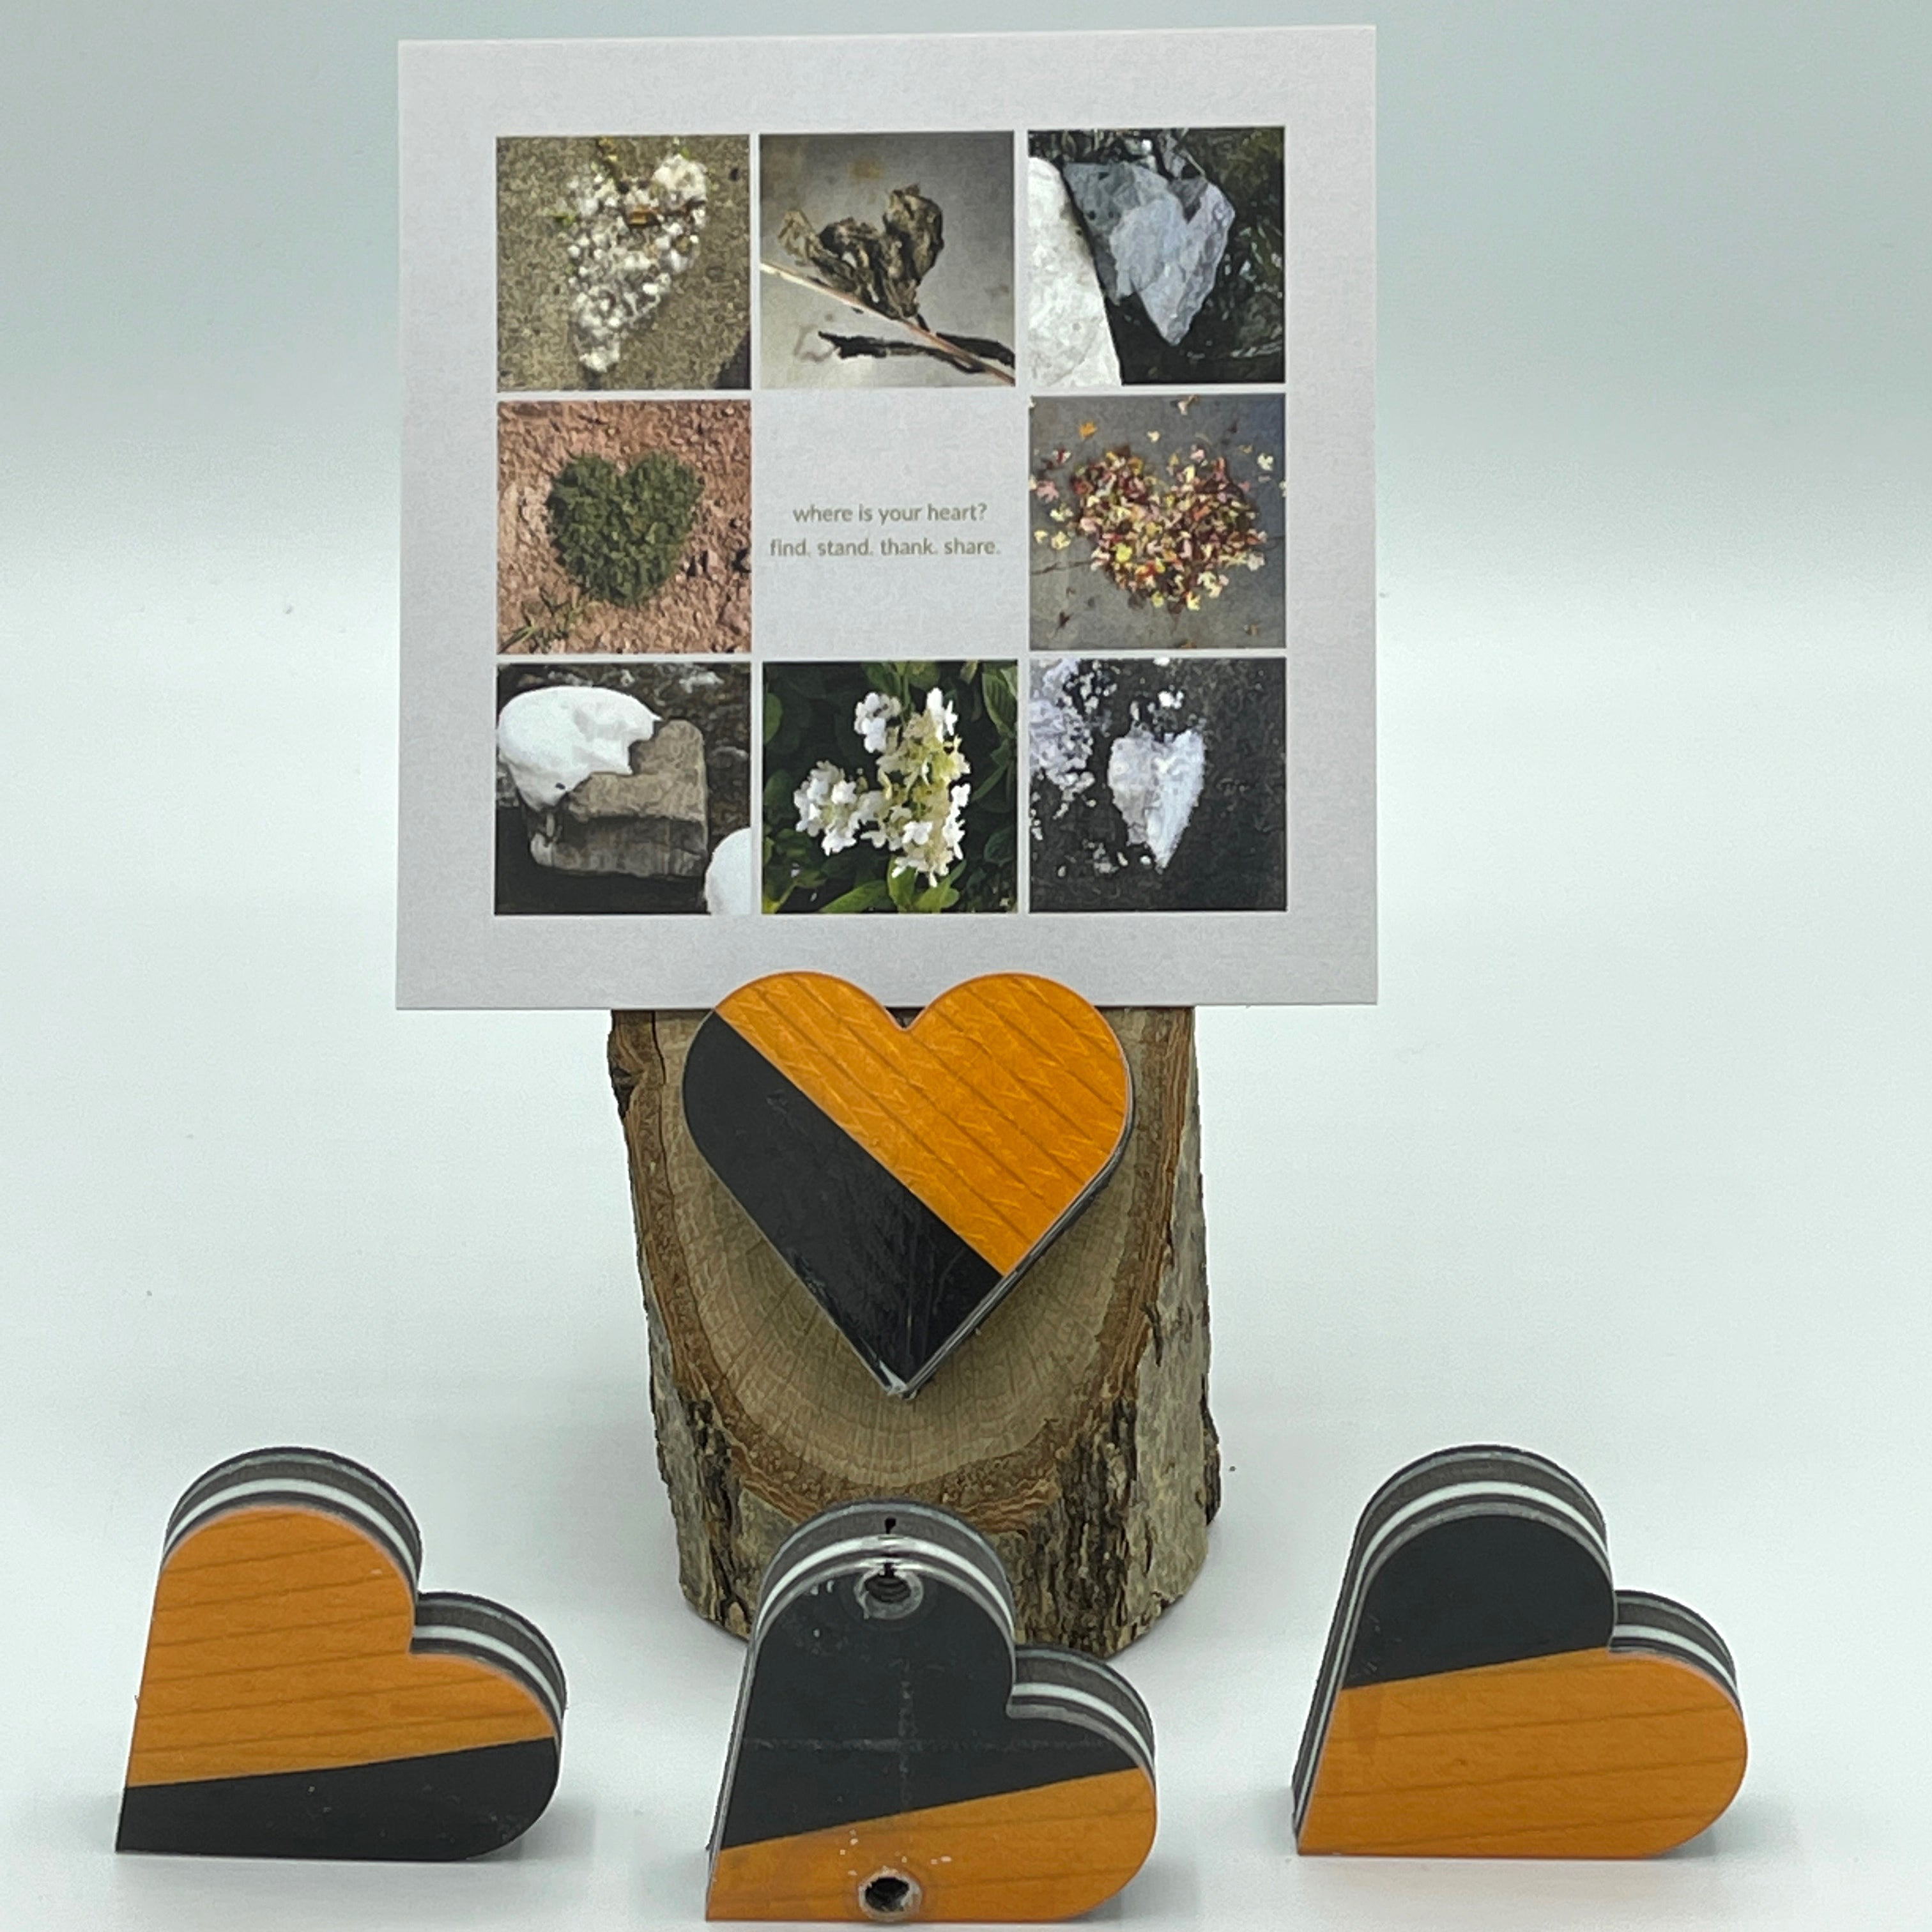 Heart Collage & Oak Stand w/ Upcycled George Ski Heart